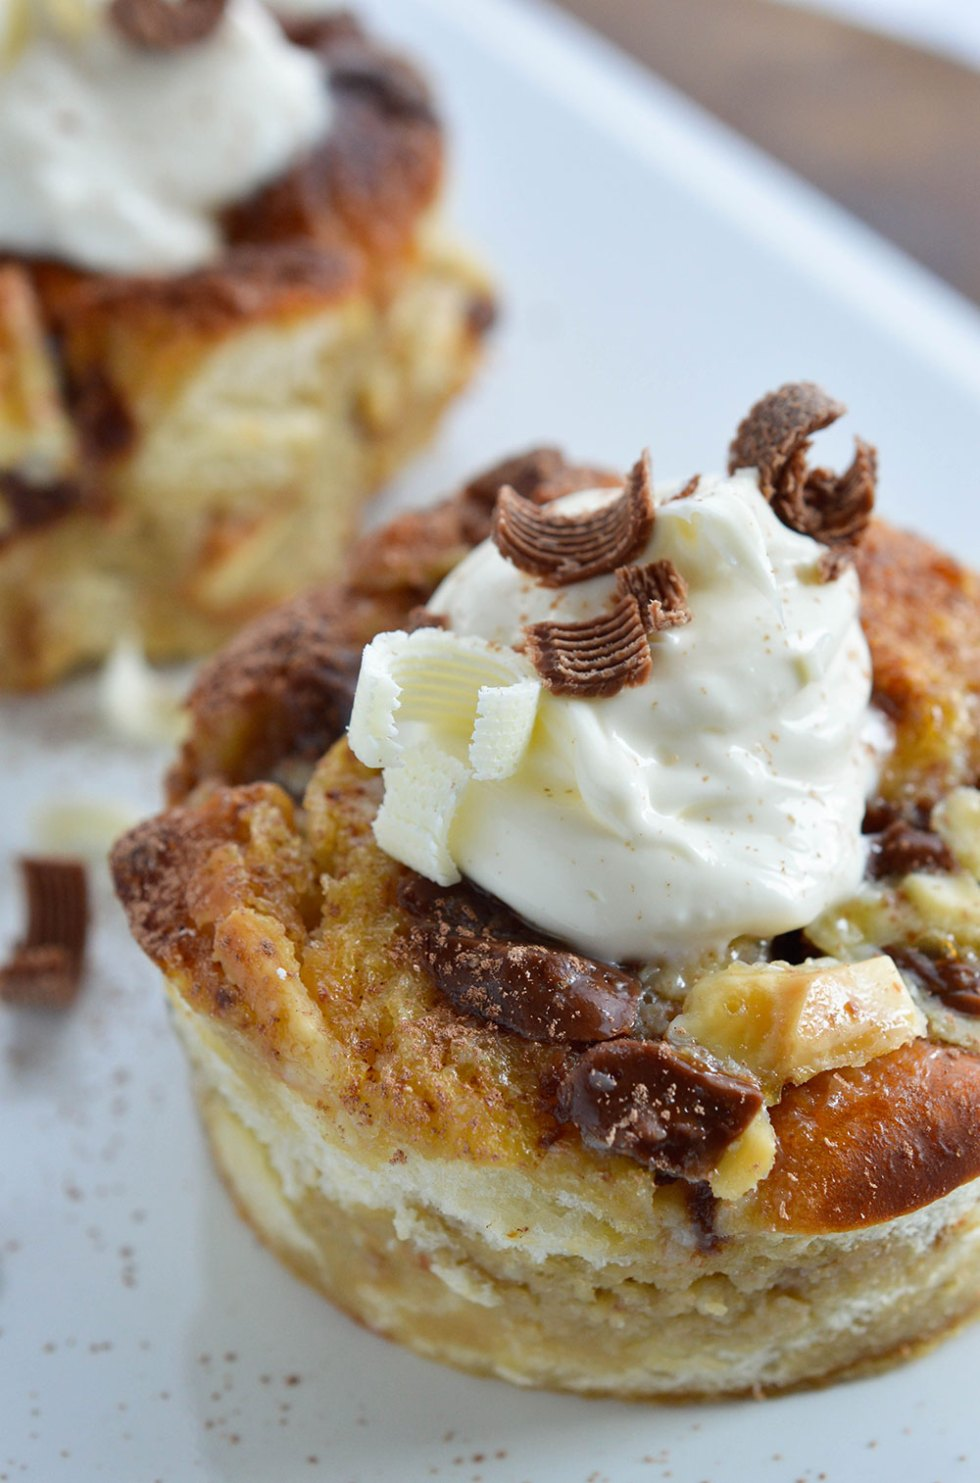 Tiramisu White Chocolate Bread Pudding - This individual dessert recipe is flavored with coffee, milk chocolate, white chocolate and mascapone.